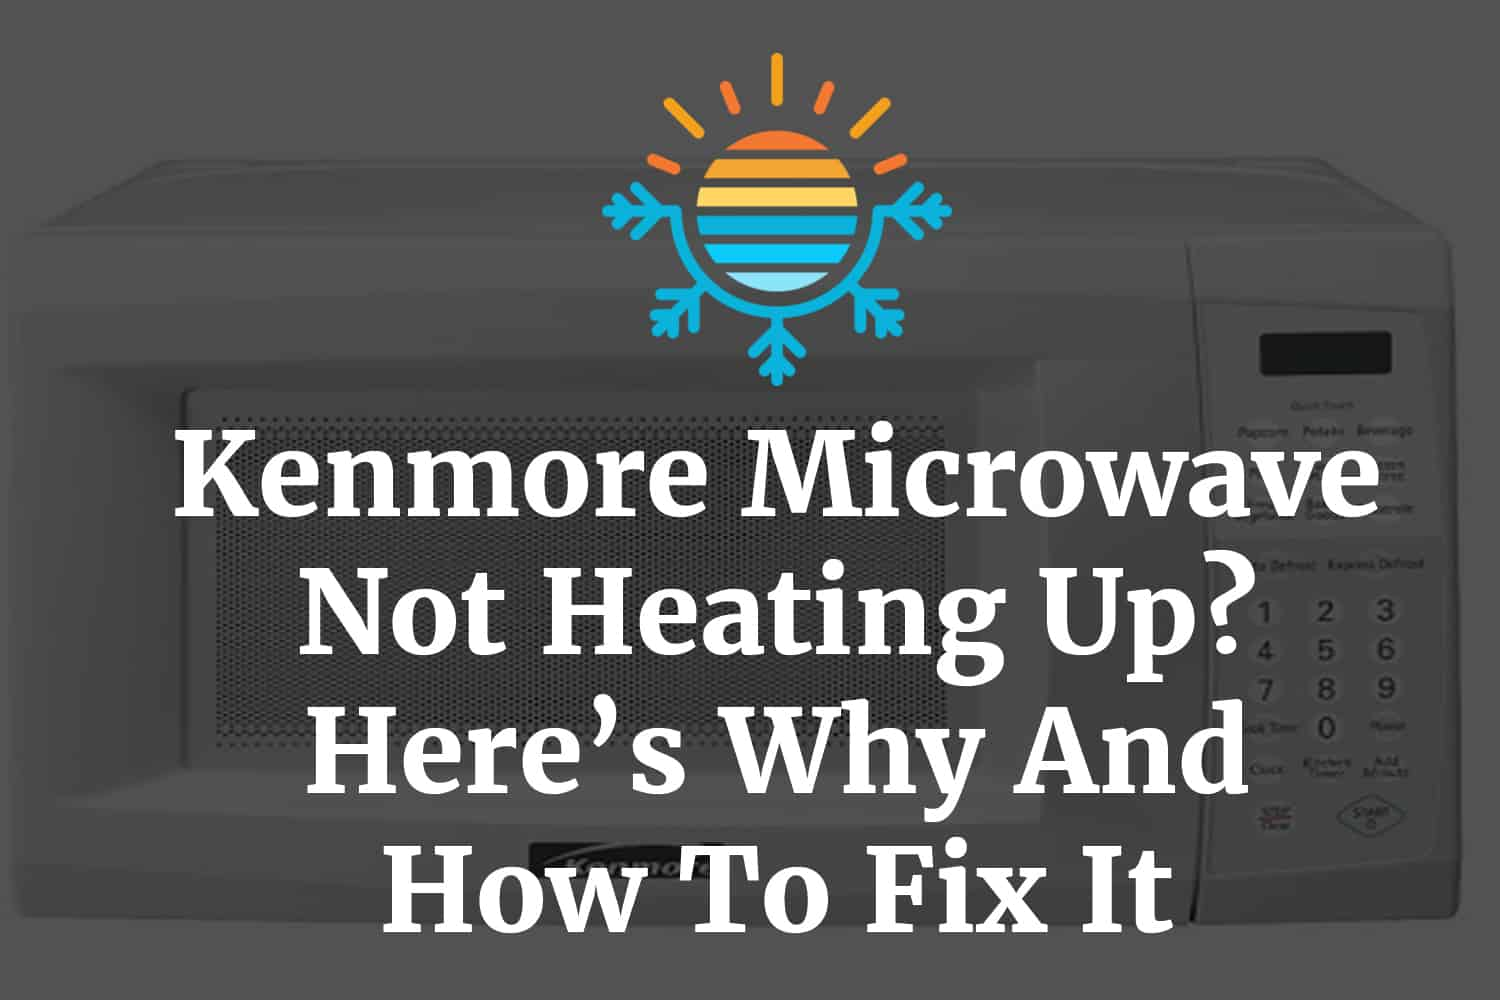 Kenmore Microwave Not Heating Up